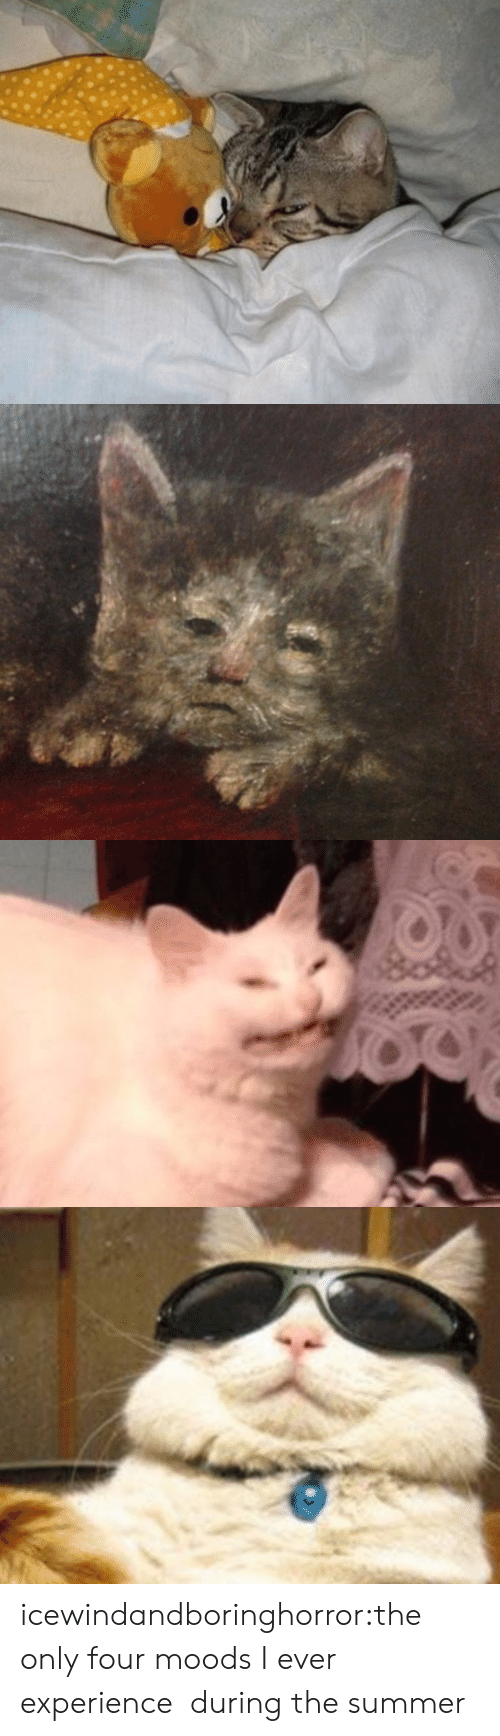 Tumblr, Summer, and Blog: icewindandboringhorror:the only four moods I ever experience during the summer